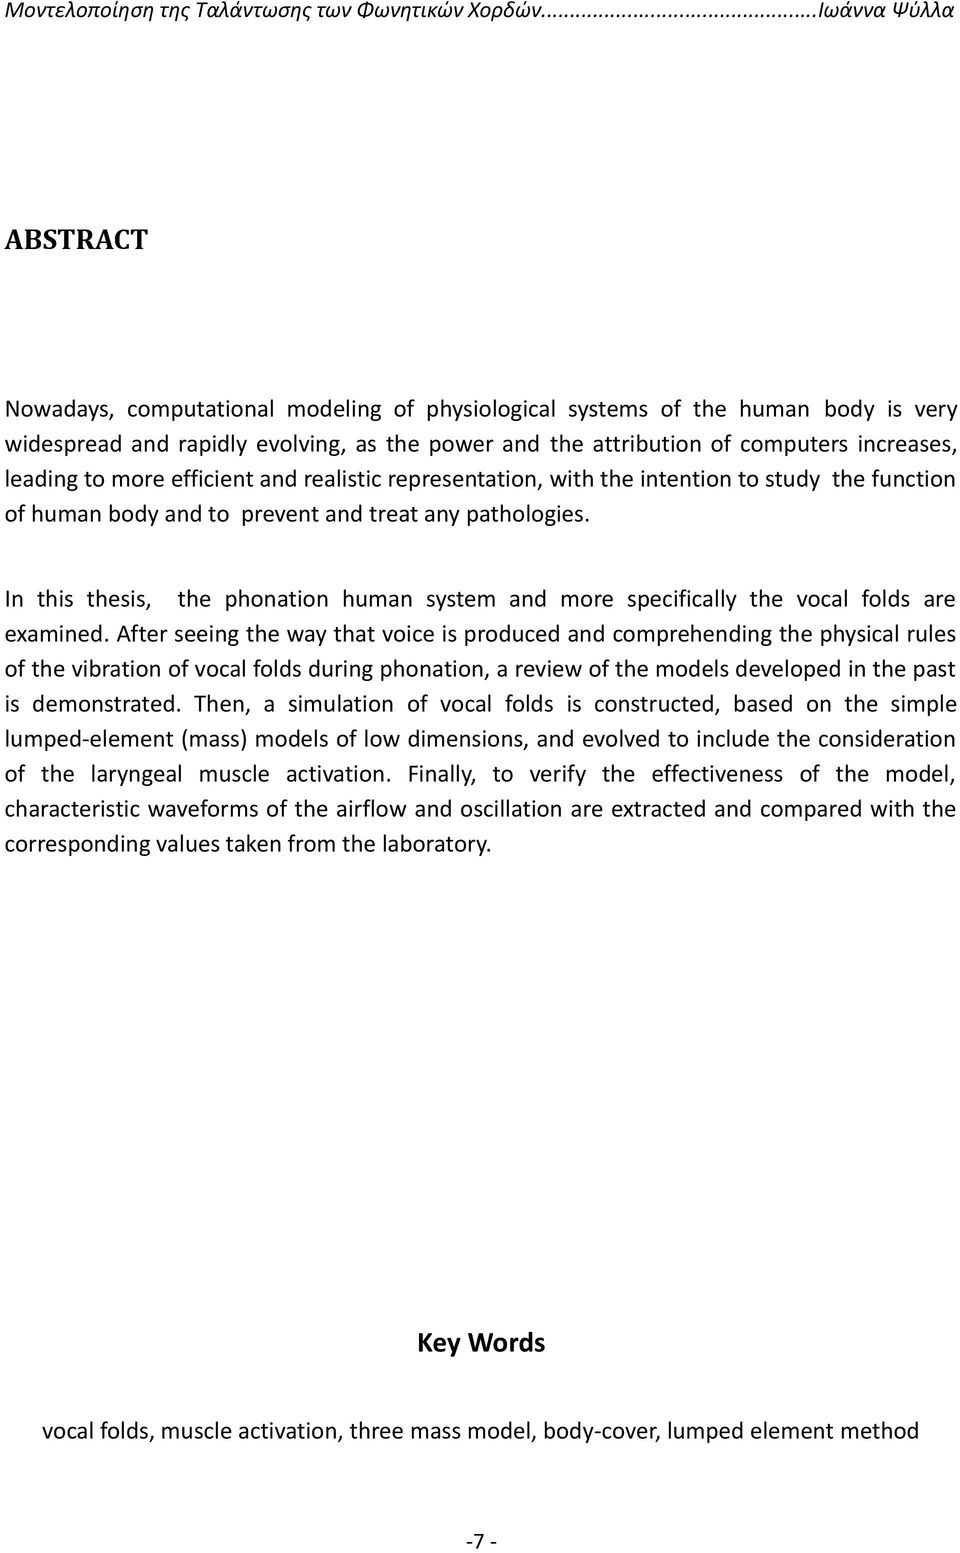 In this thesis, the phonation human system and more specifically the vocal folds are examined.